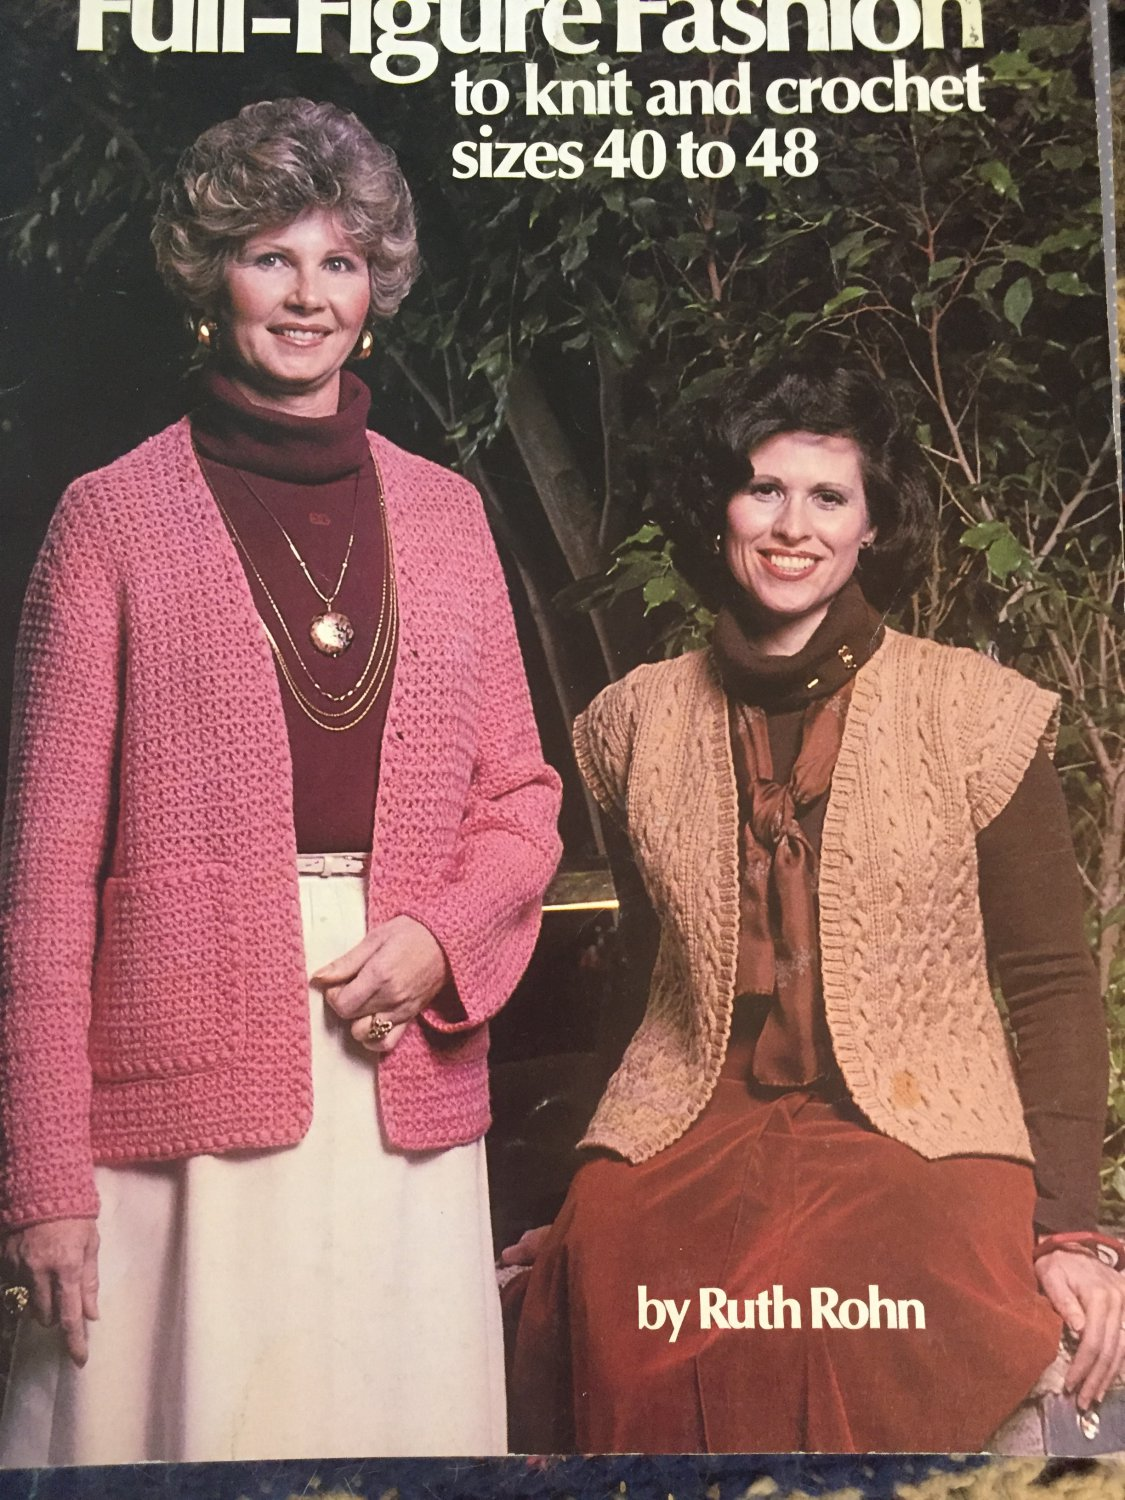 Full-Figure Fashion to Knit & Crochet Pattern Book from Leisure Arts 142 sizes 40 - 48